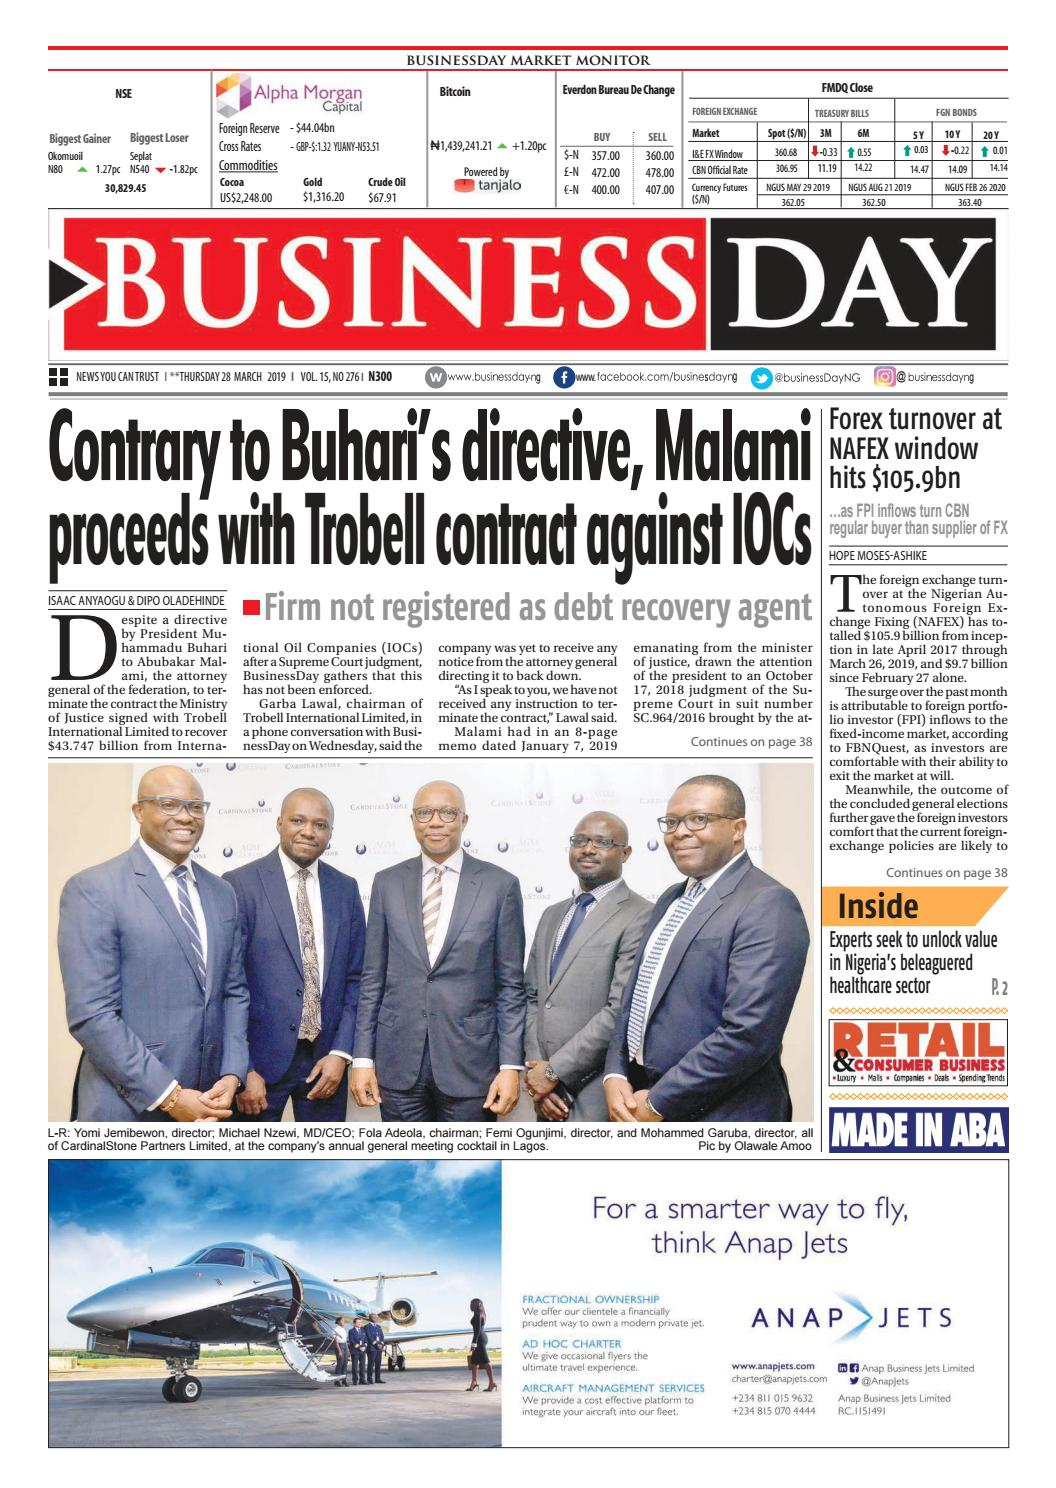 BusinessDay 28 Mar 2019 by BusinessDay - issuu